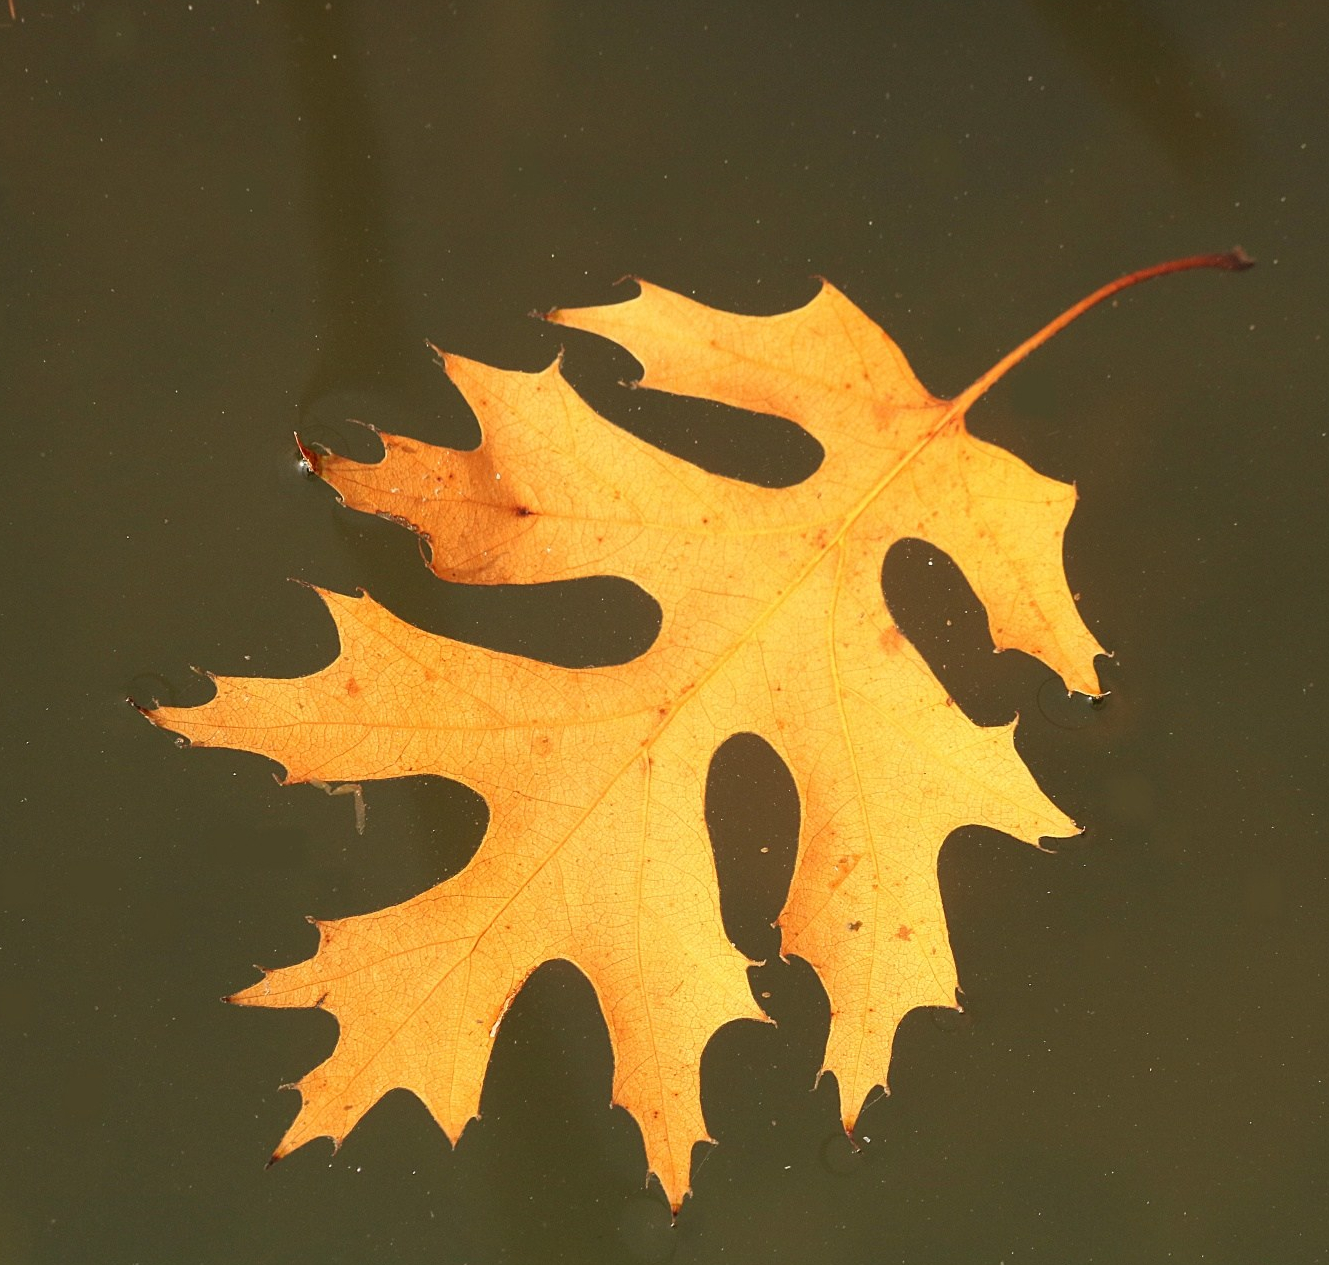 autumn-leaf-floating-in-water.jpg